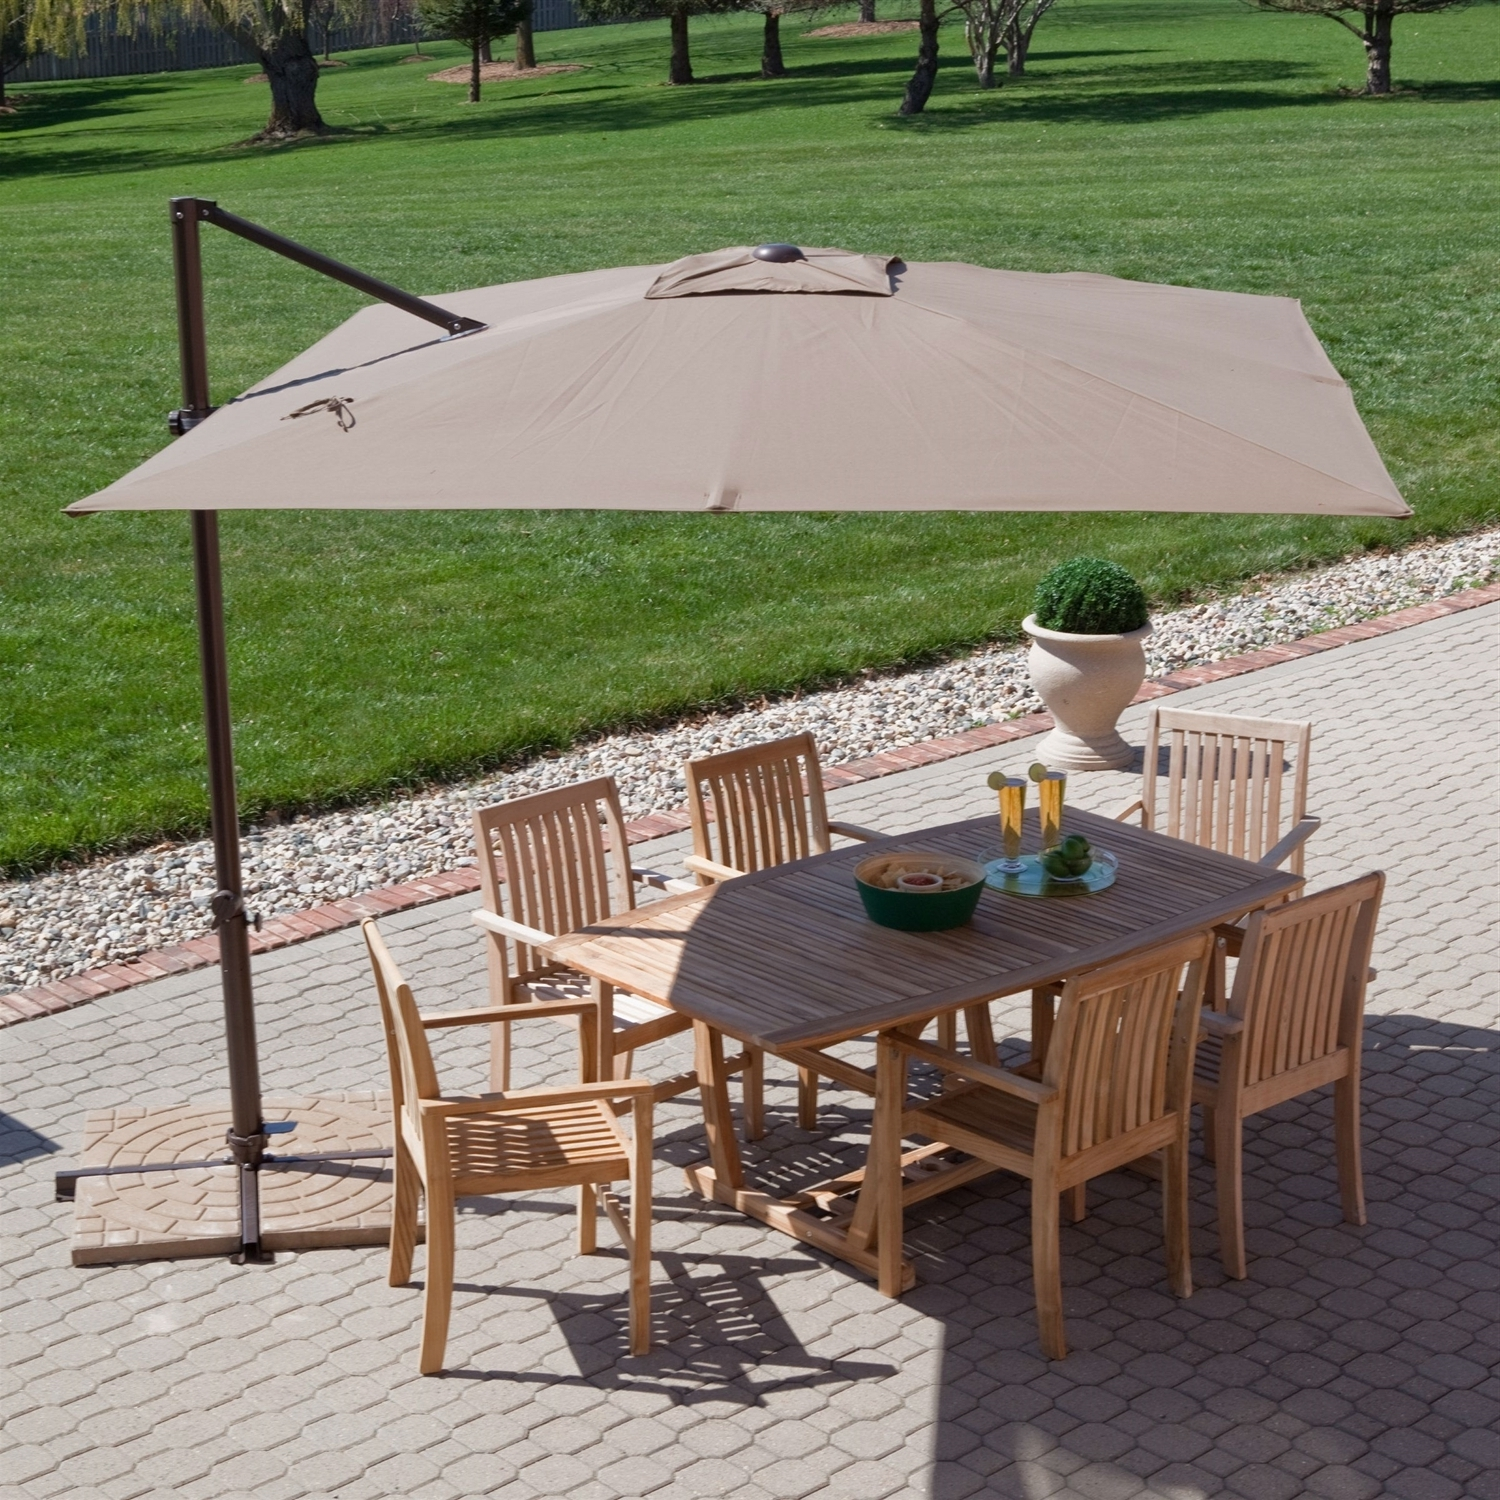 Popular Modern 8.5 Ft Offset Cantilever Square Patio Umbrella With Mocha In Square Cantilever Patio Umbrellas (Gallery 7 of 20)